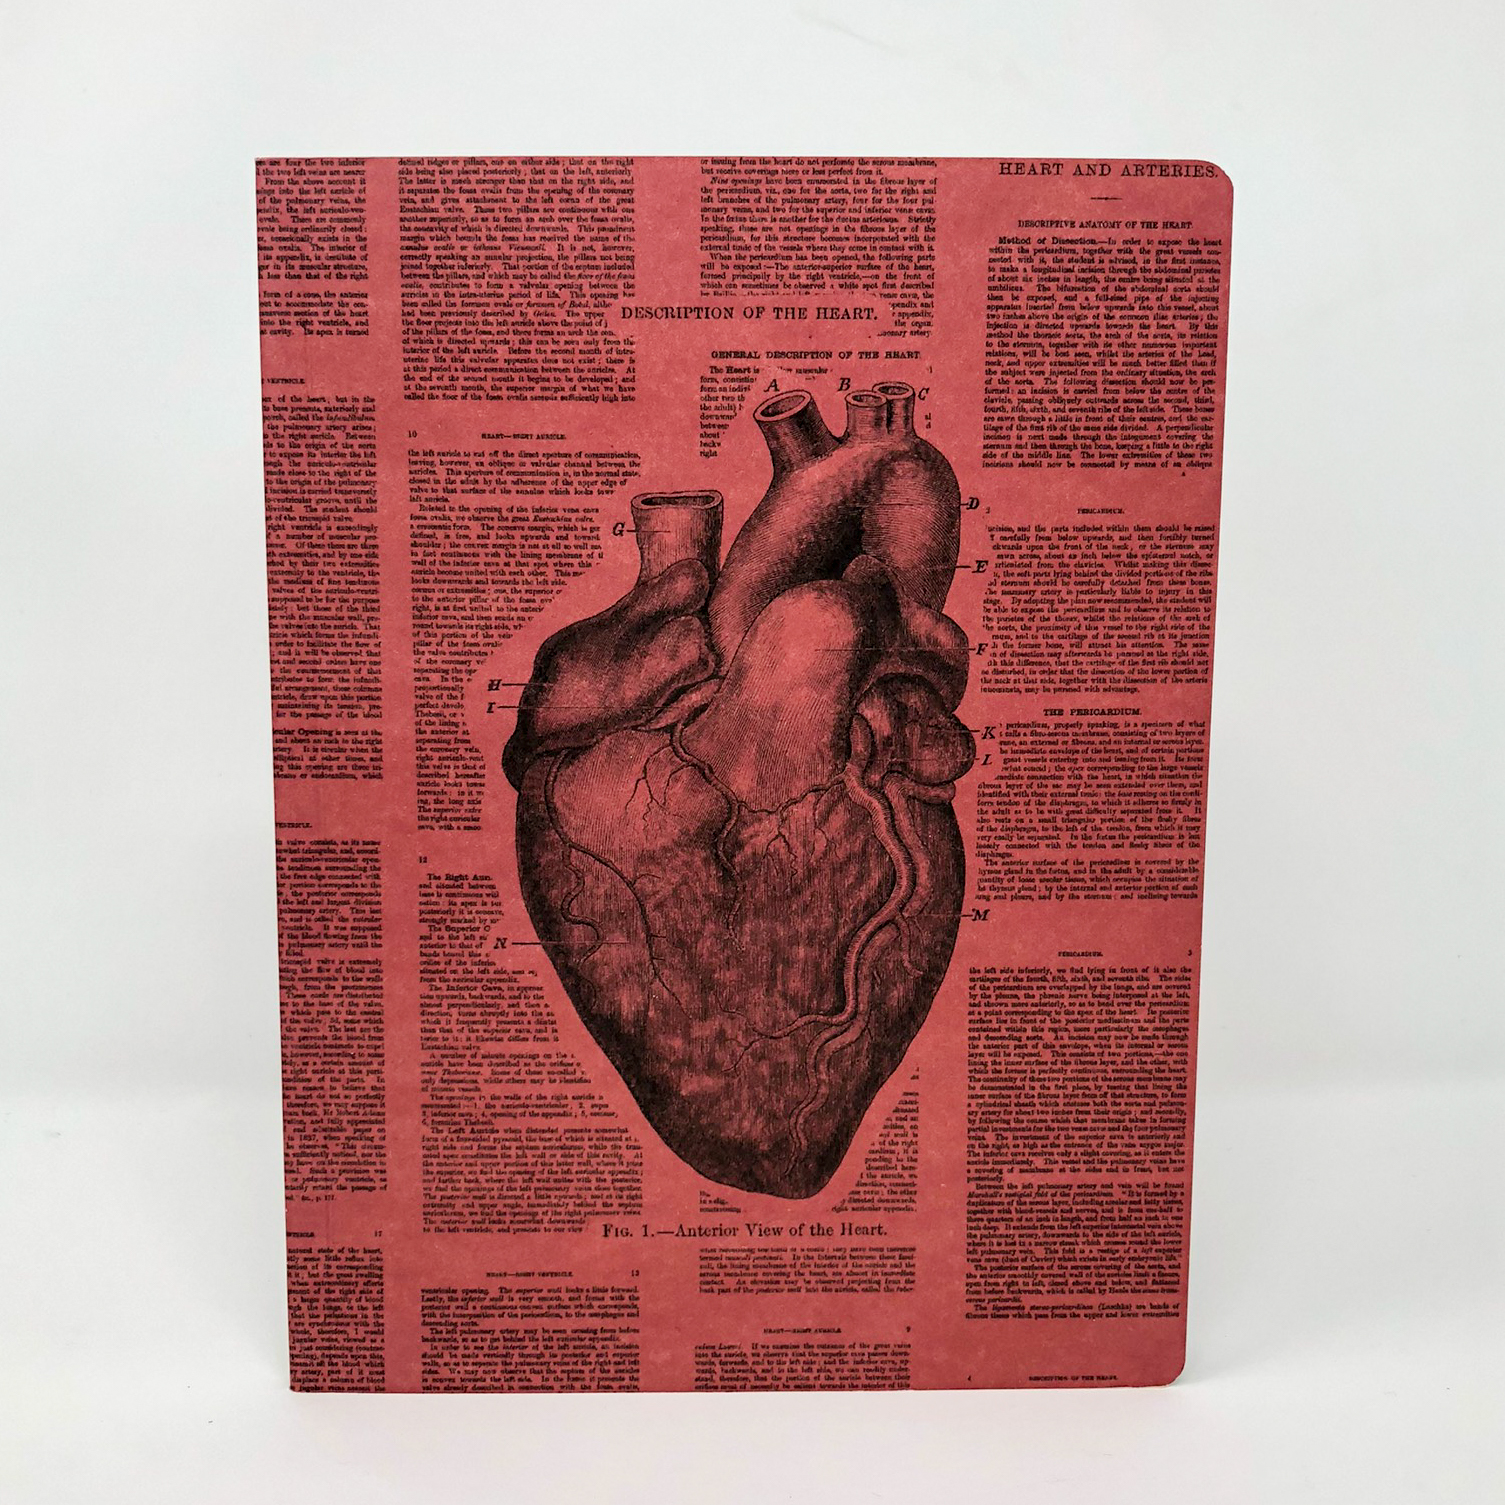 The cover of a journal featuring an anatomical drawing of a human heart